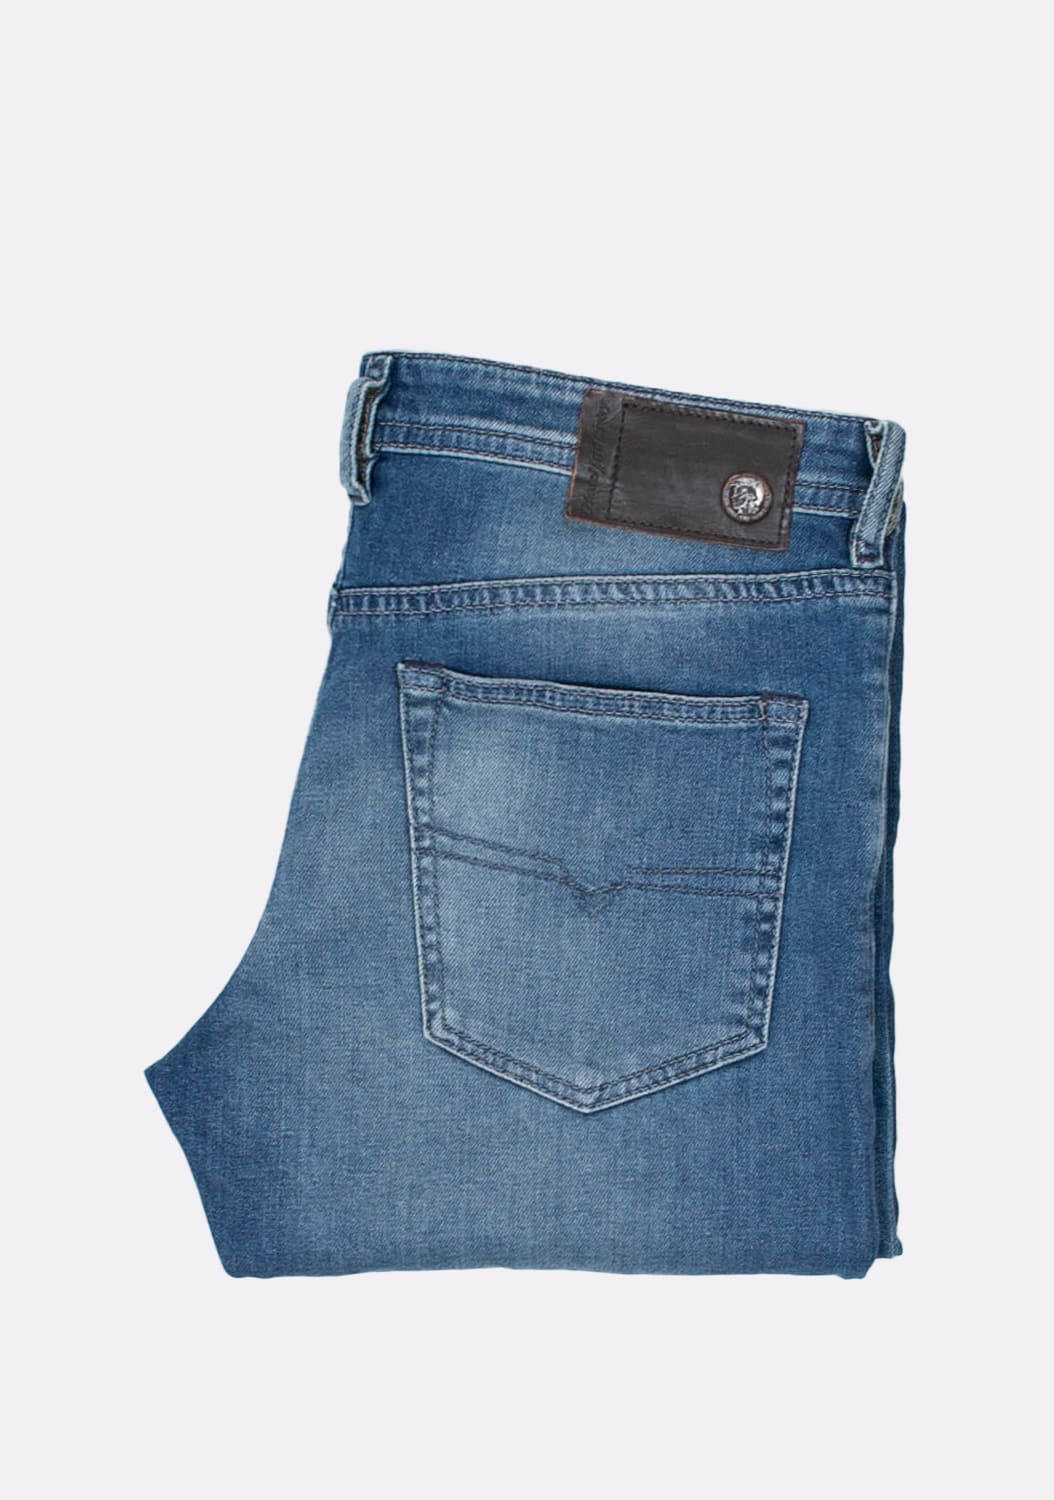 Diesel-Buster-Regular-Slim-Tappered-0669C-Stretch-30-32-melyni-urocklt (1)